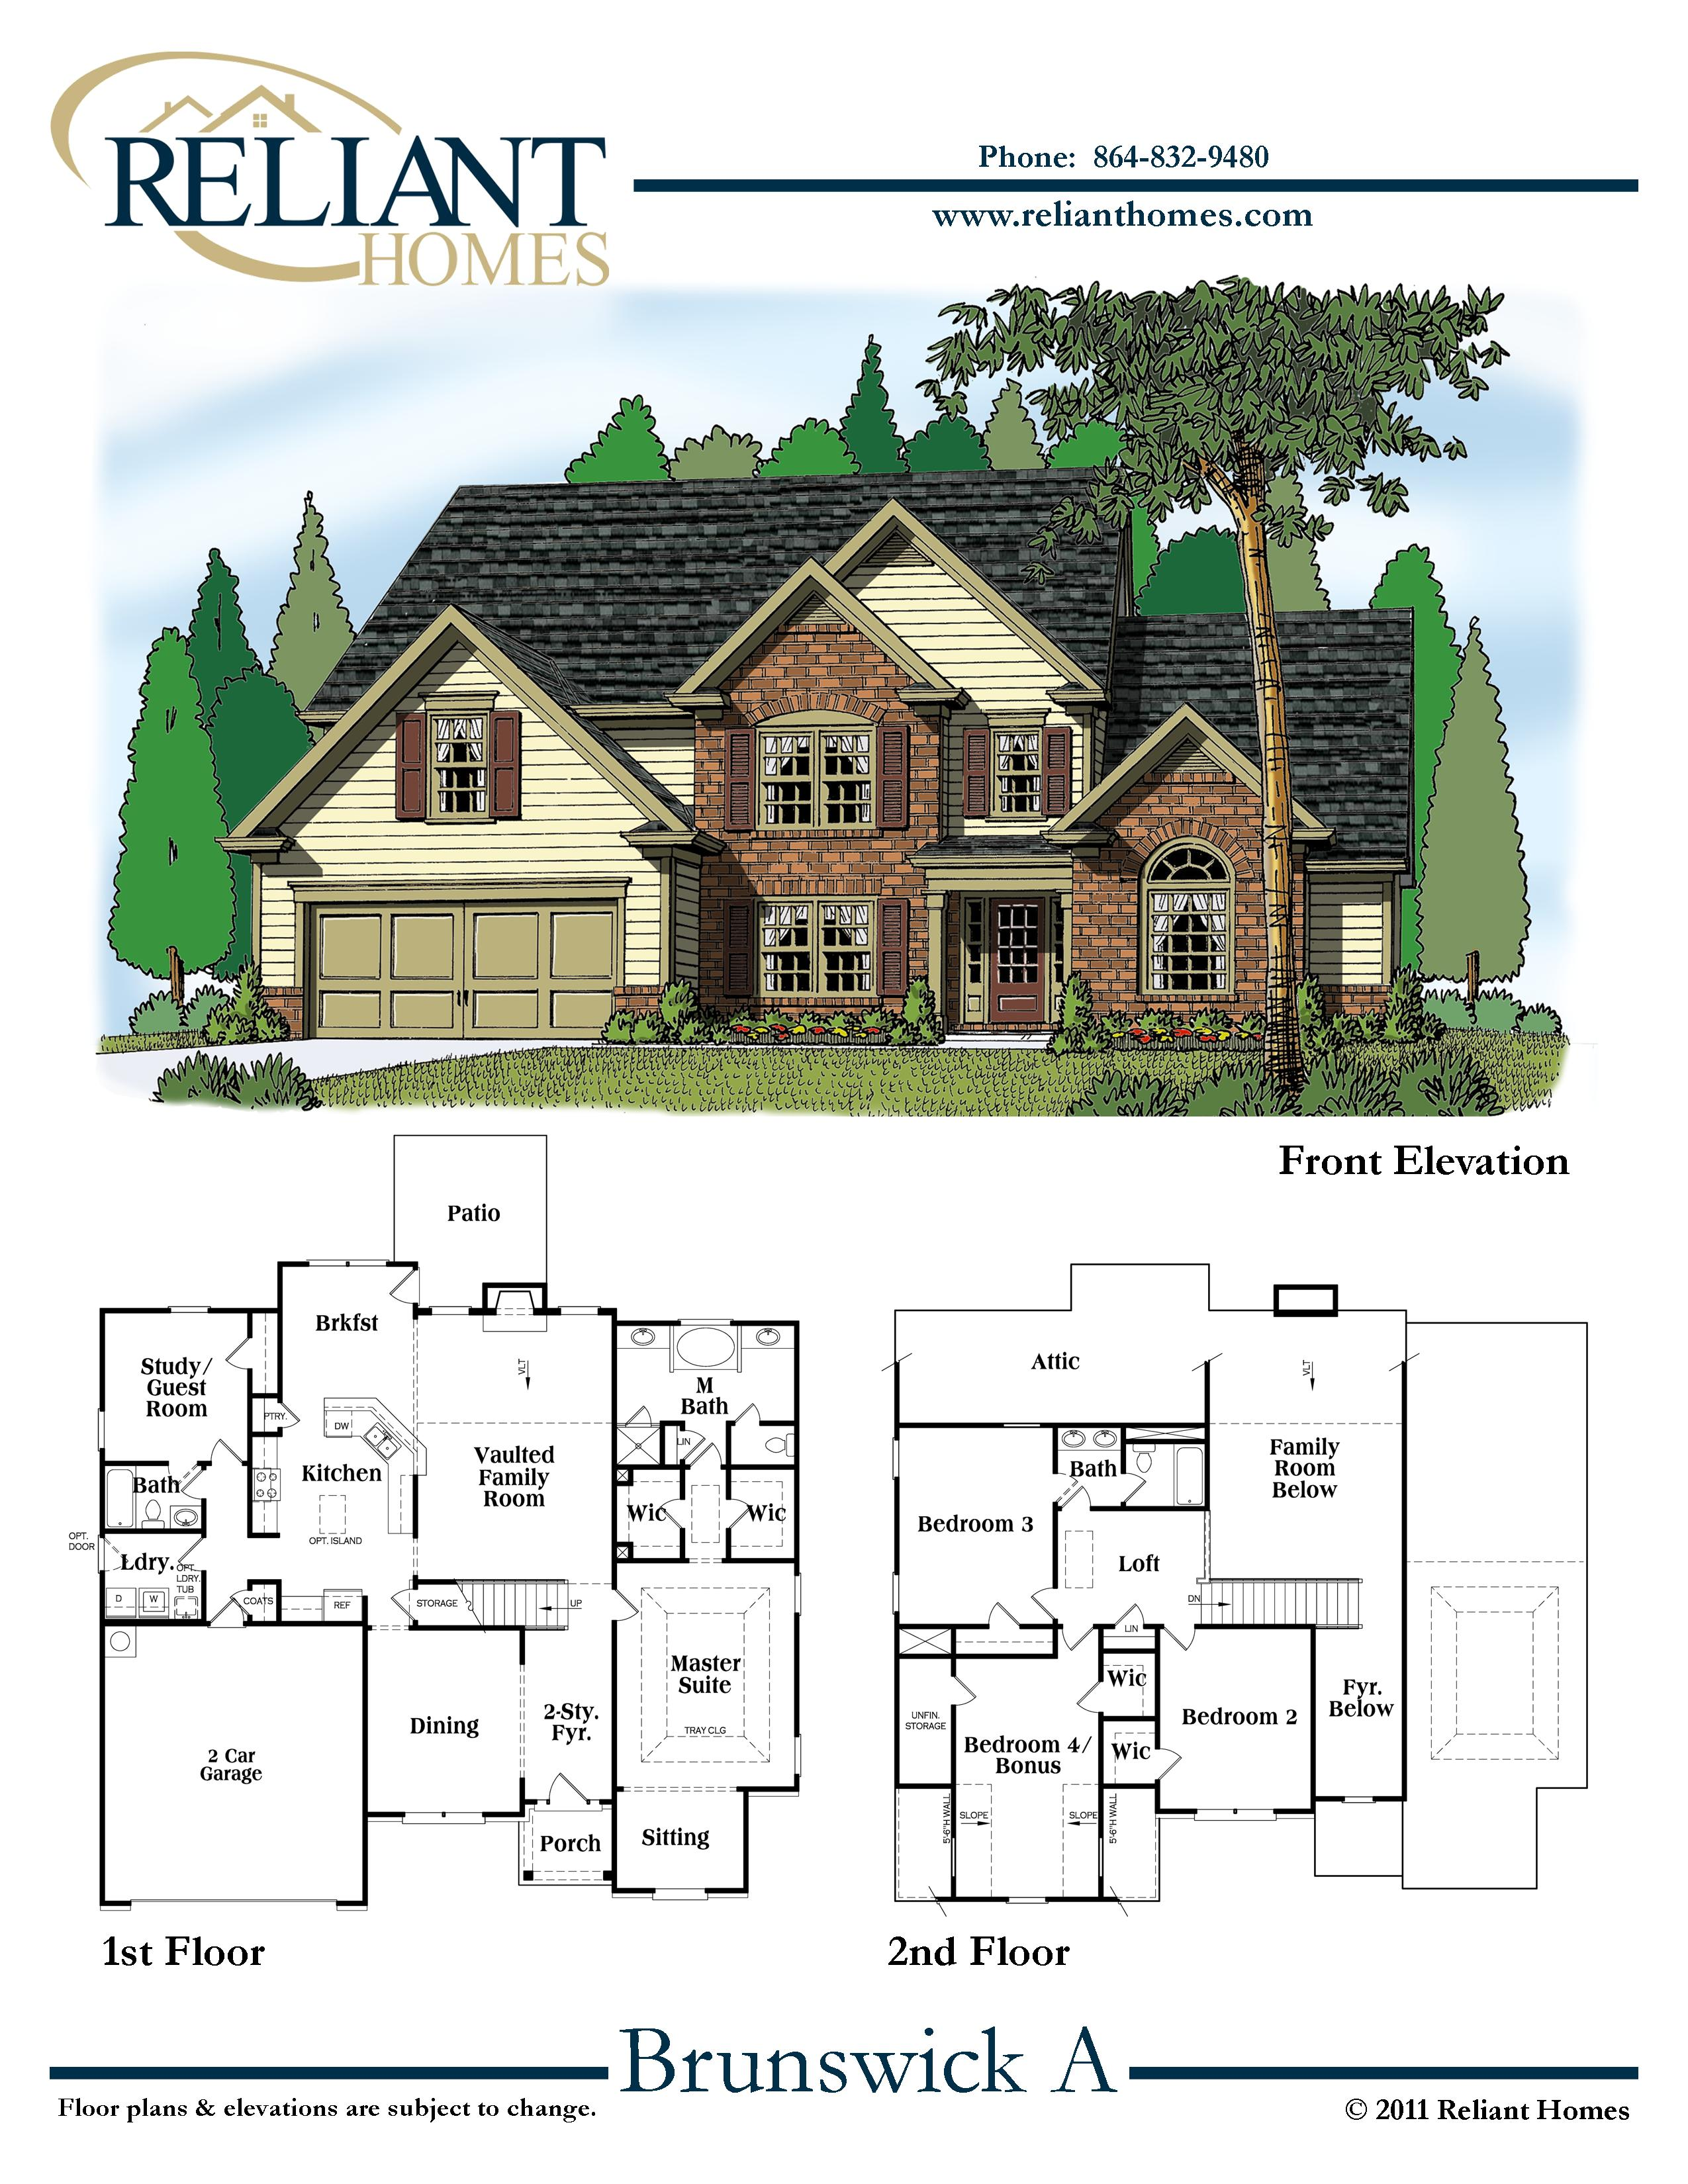 Sc brunswick a reliant homes new homes in atlanta for Reliant homes floor plans